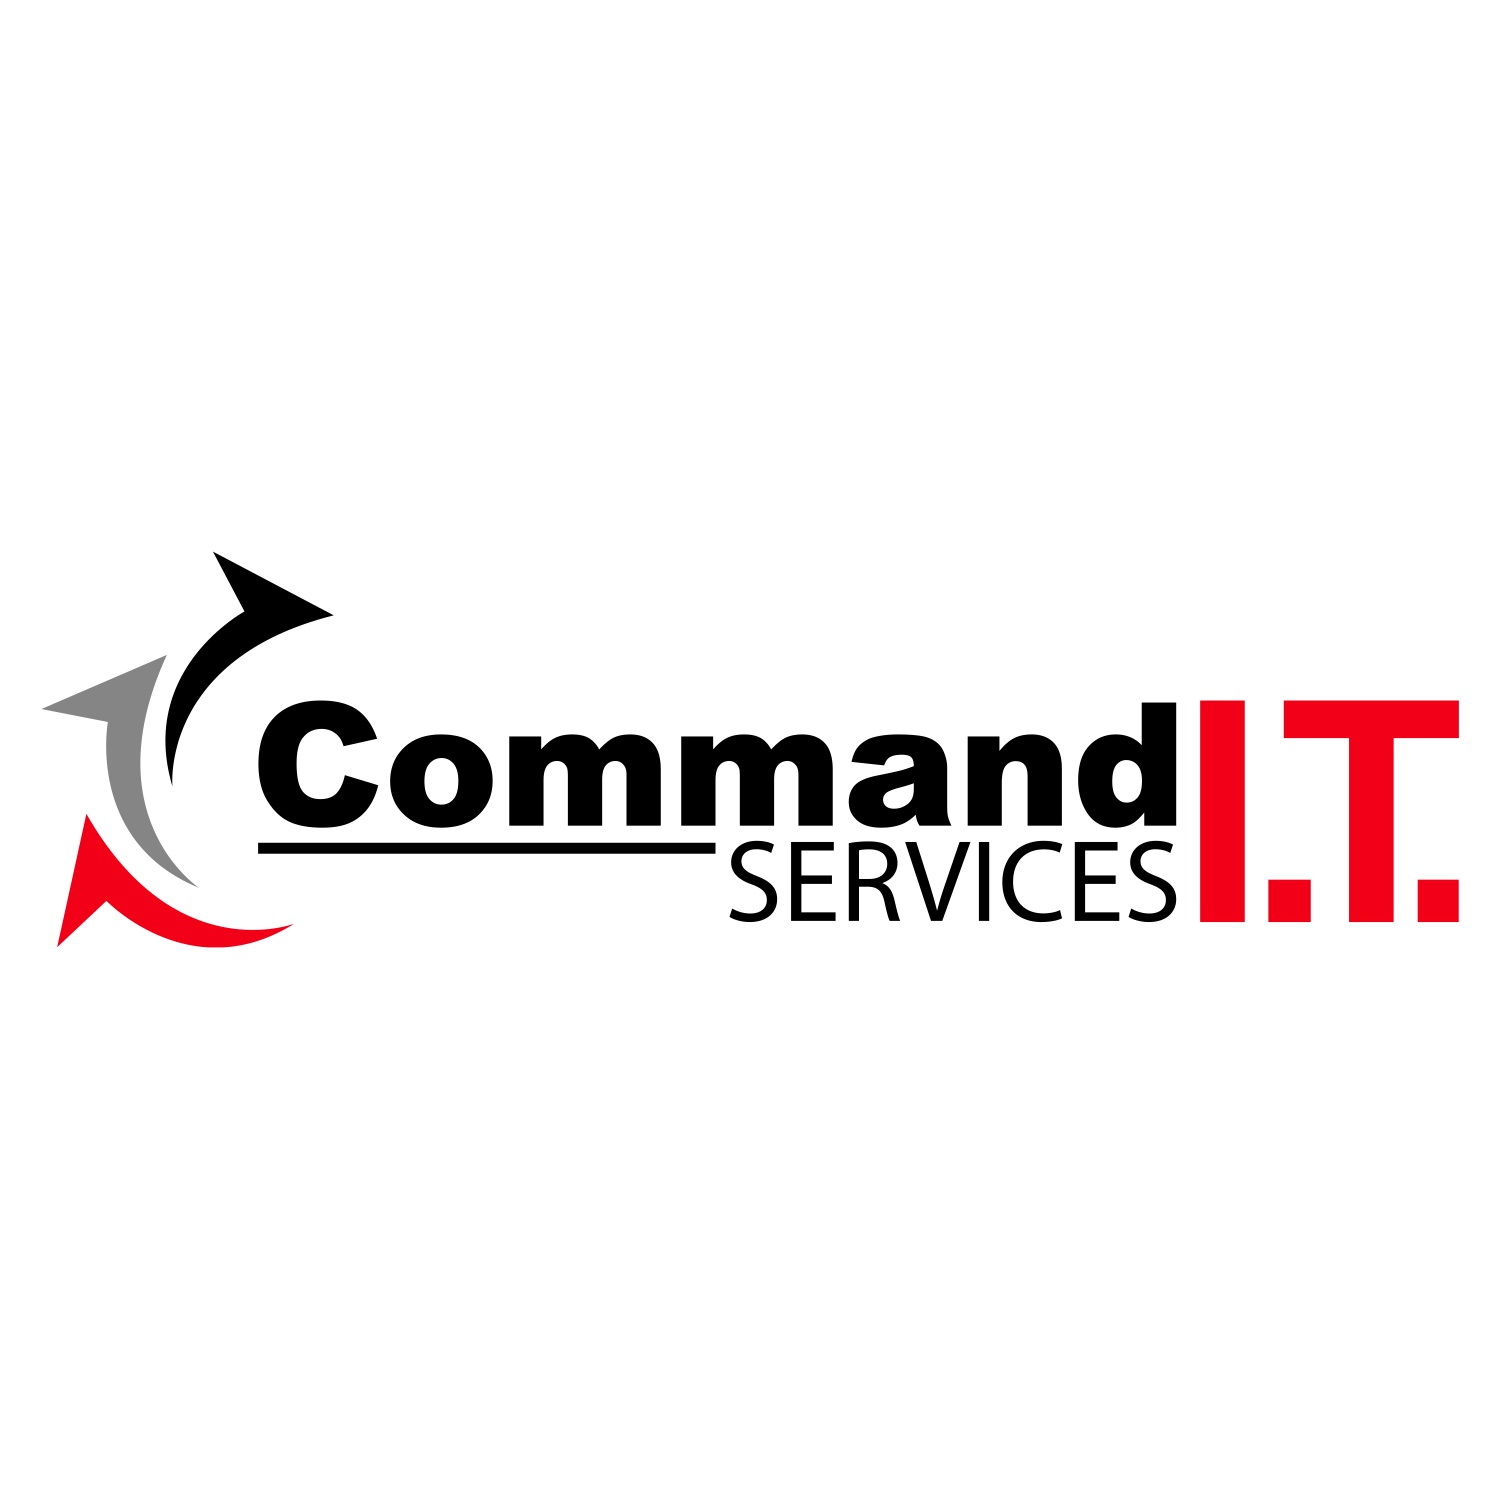 Command I.T. Services